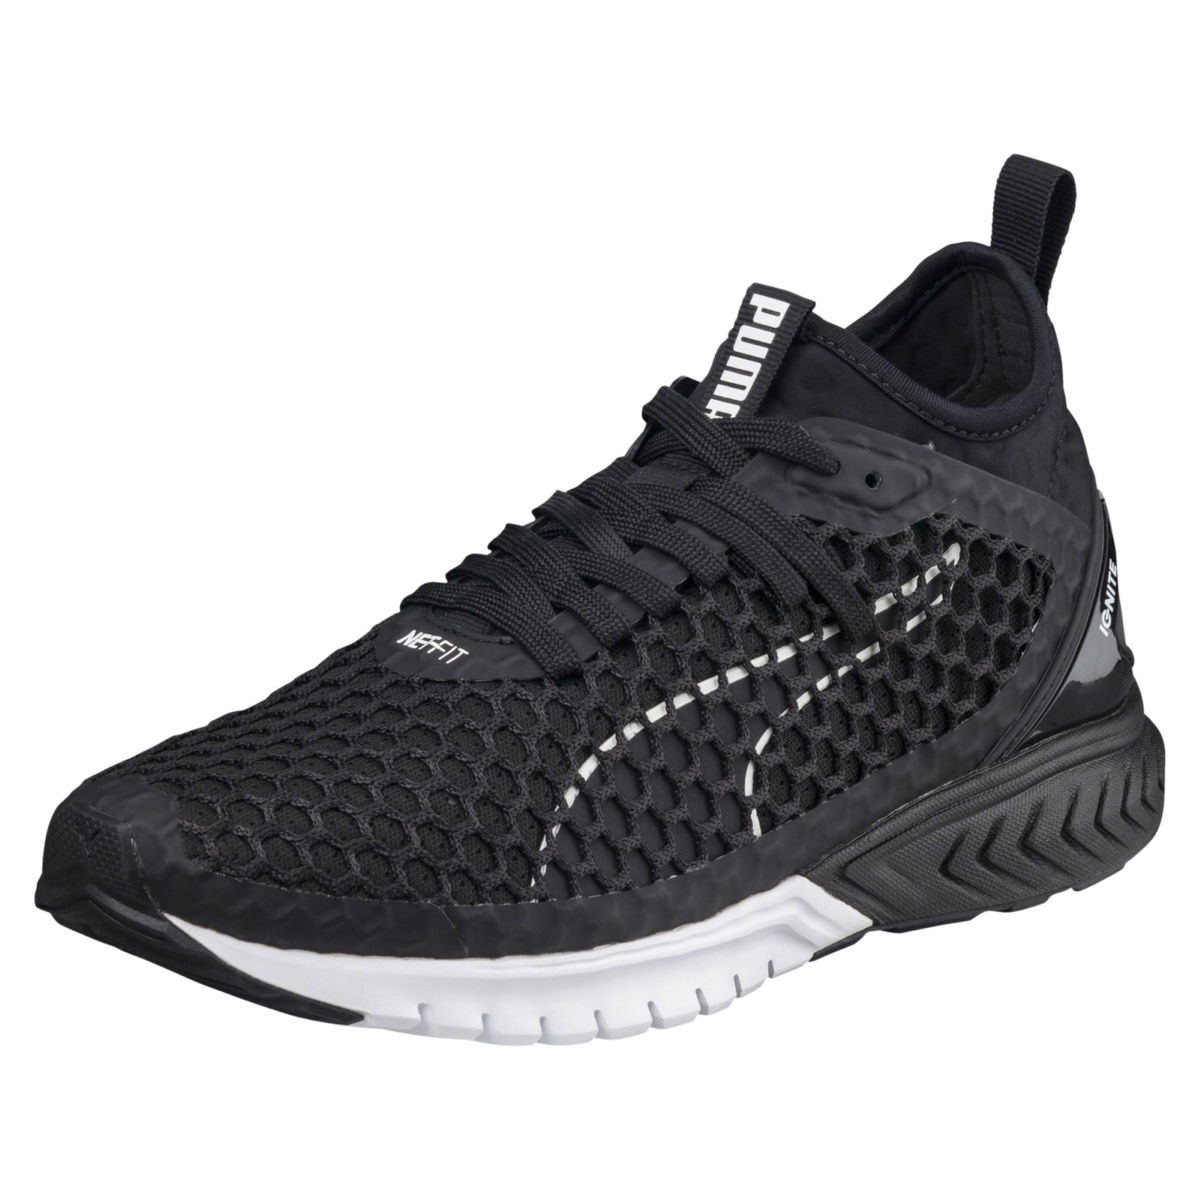 Chaussures Femme Puma Ignite Dual Netfit - UK 5 black-white